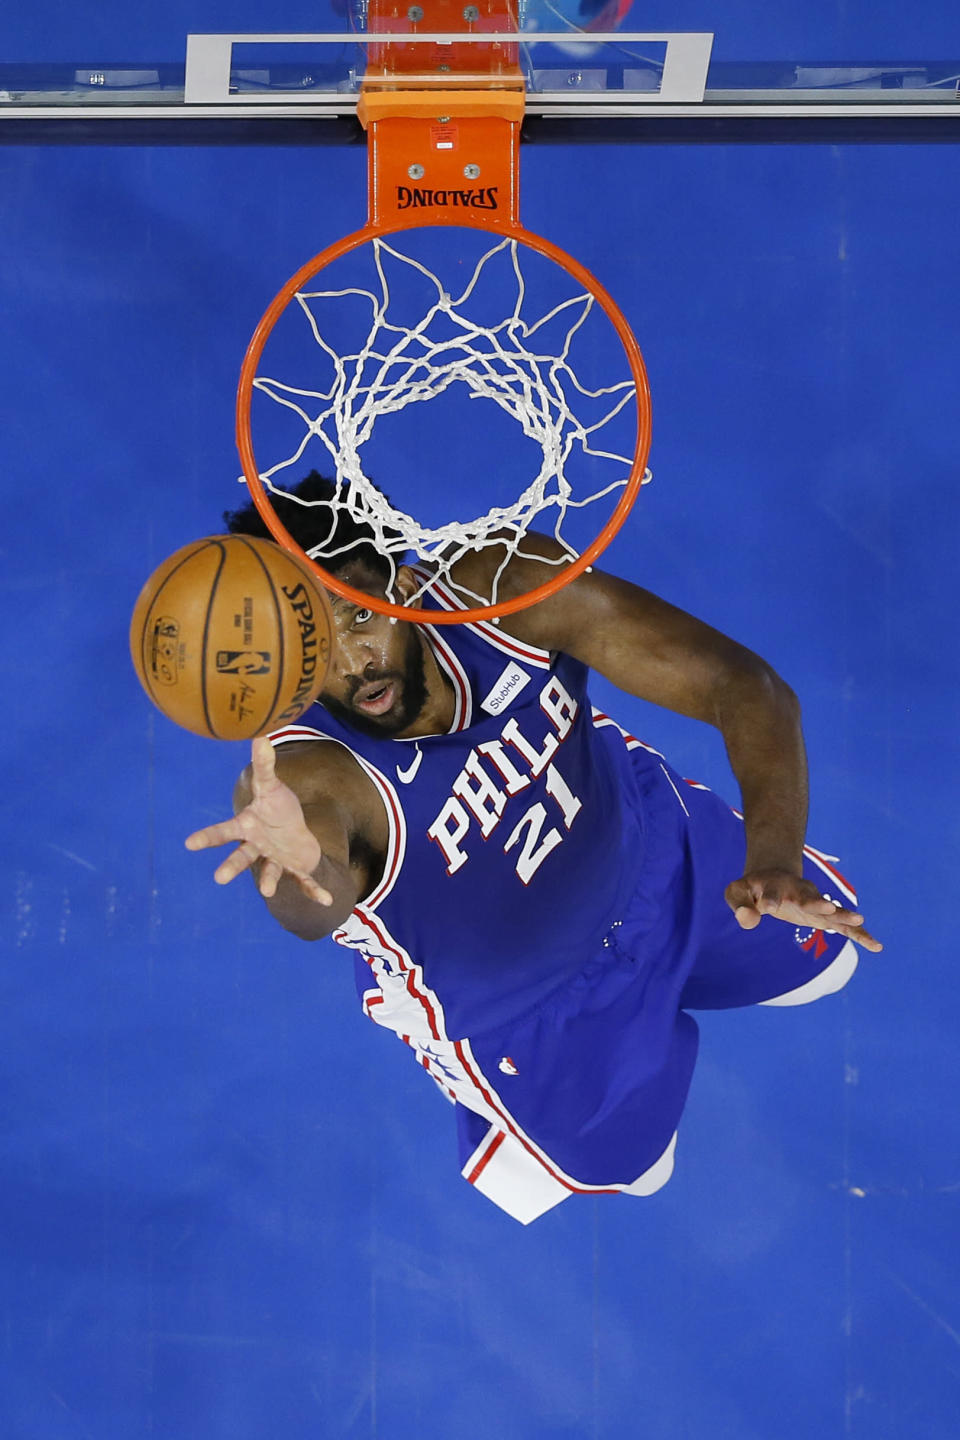 FILE - In this Feb. 4, 2021, file photo, Philadelphia 76ers' Joel Embiid goes up for a shot during the first half of an NBA basketball game against the Portland Trail Blazers in Philadelphia. Embiid is having the best season for a 76ers big man since Moses Malone and he has his team atop the Eastern Conference standings headed into the second half of the season. (AP Photo/Matt Slocum, File)